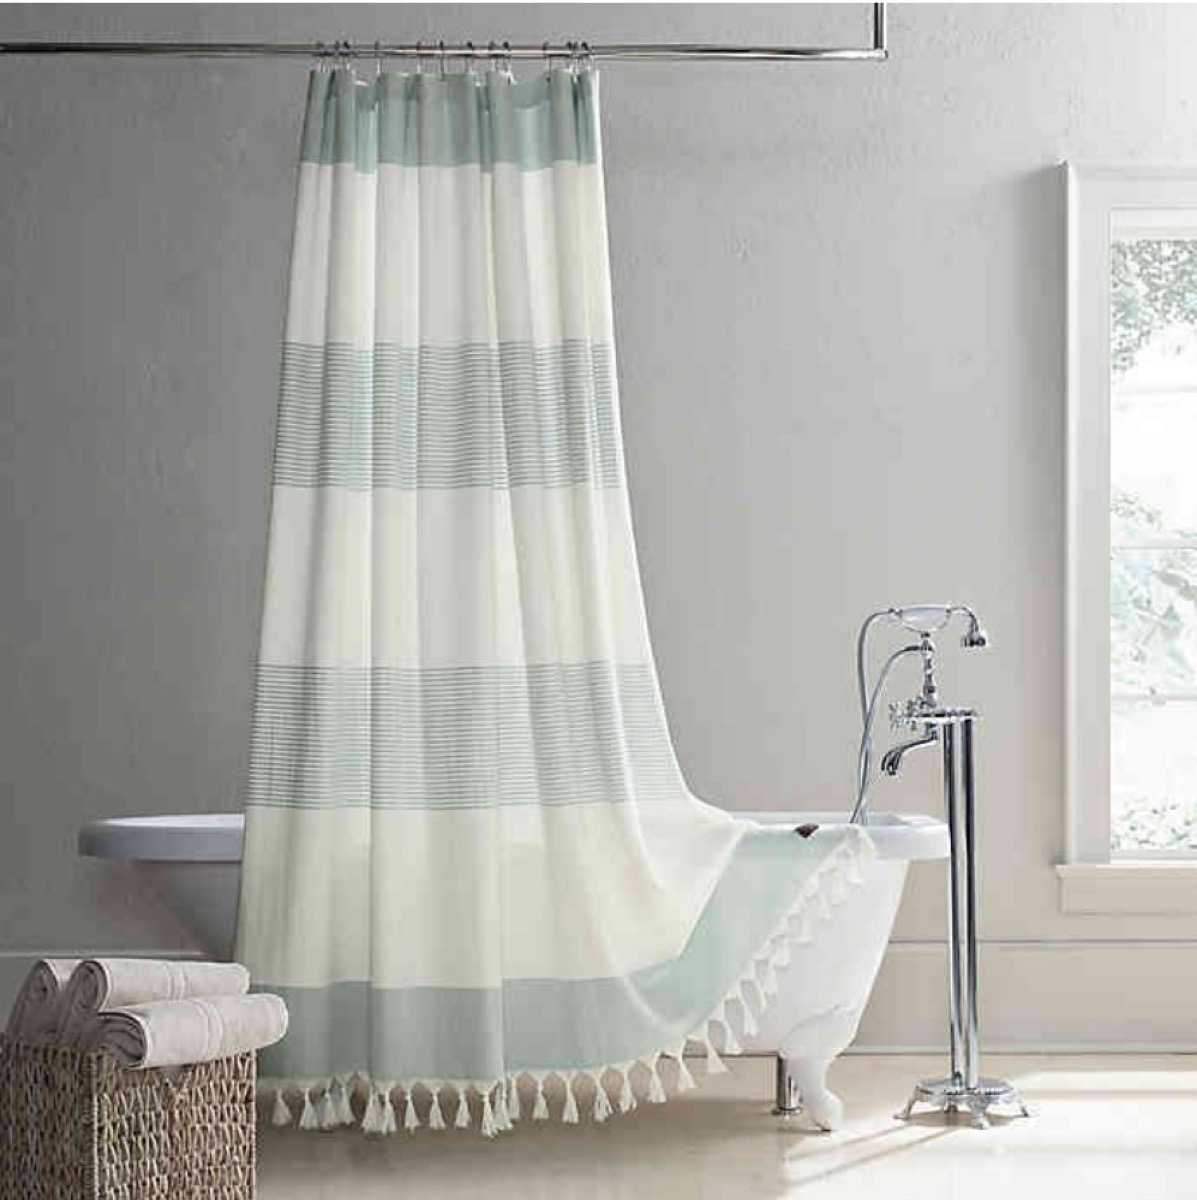 green and white striped shower curtain, bathroom accessories